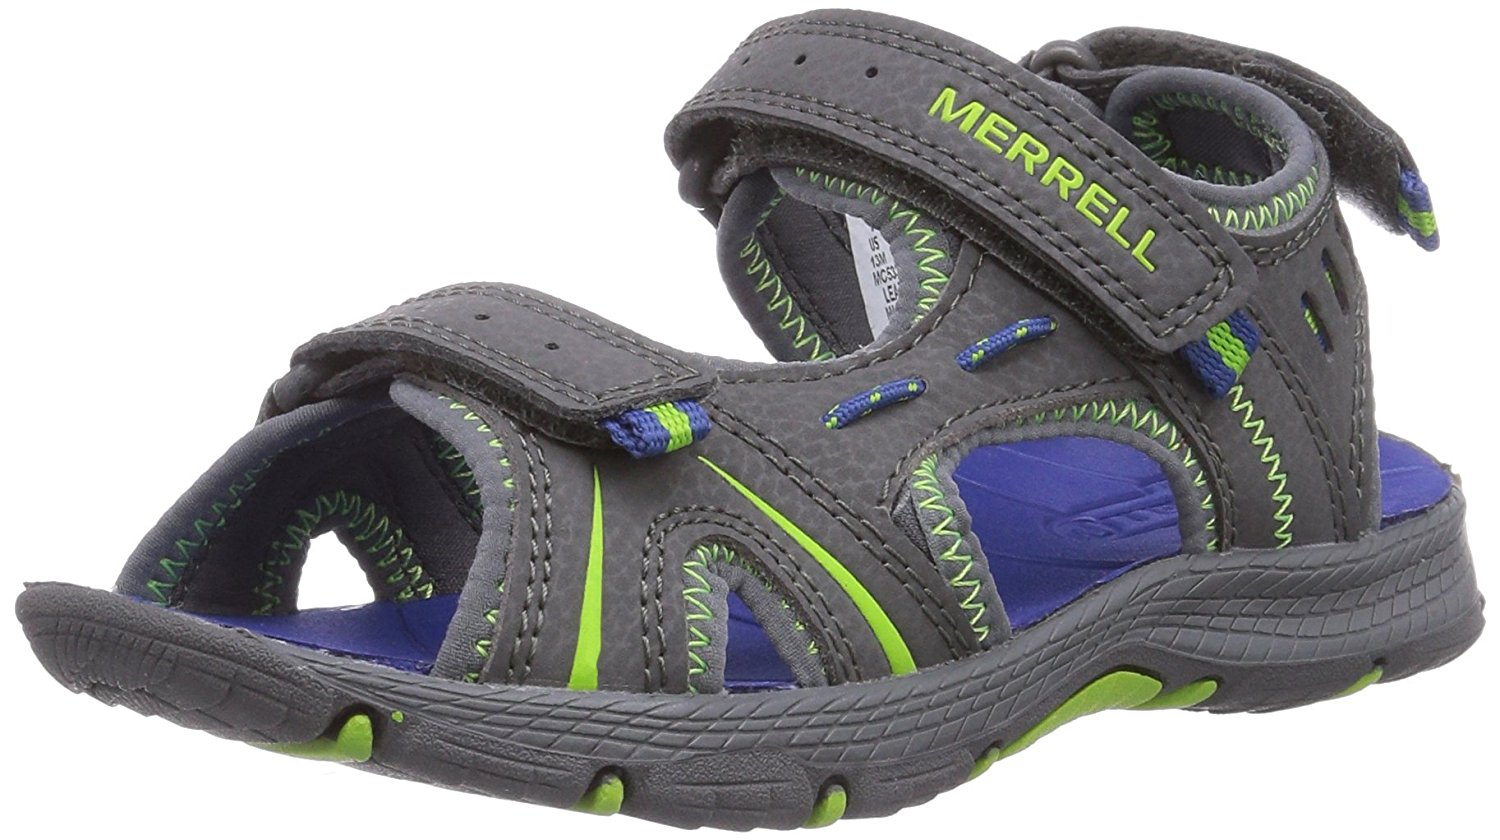 3d1b411d3d1a Get Quotations · Merrell Panther Athletic Water Sandal (Toddler Little  Kid Big Kid)